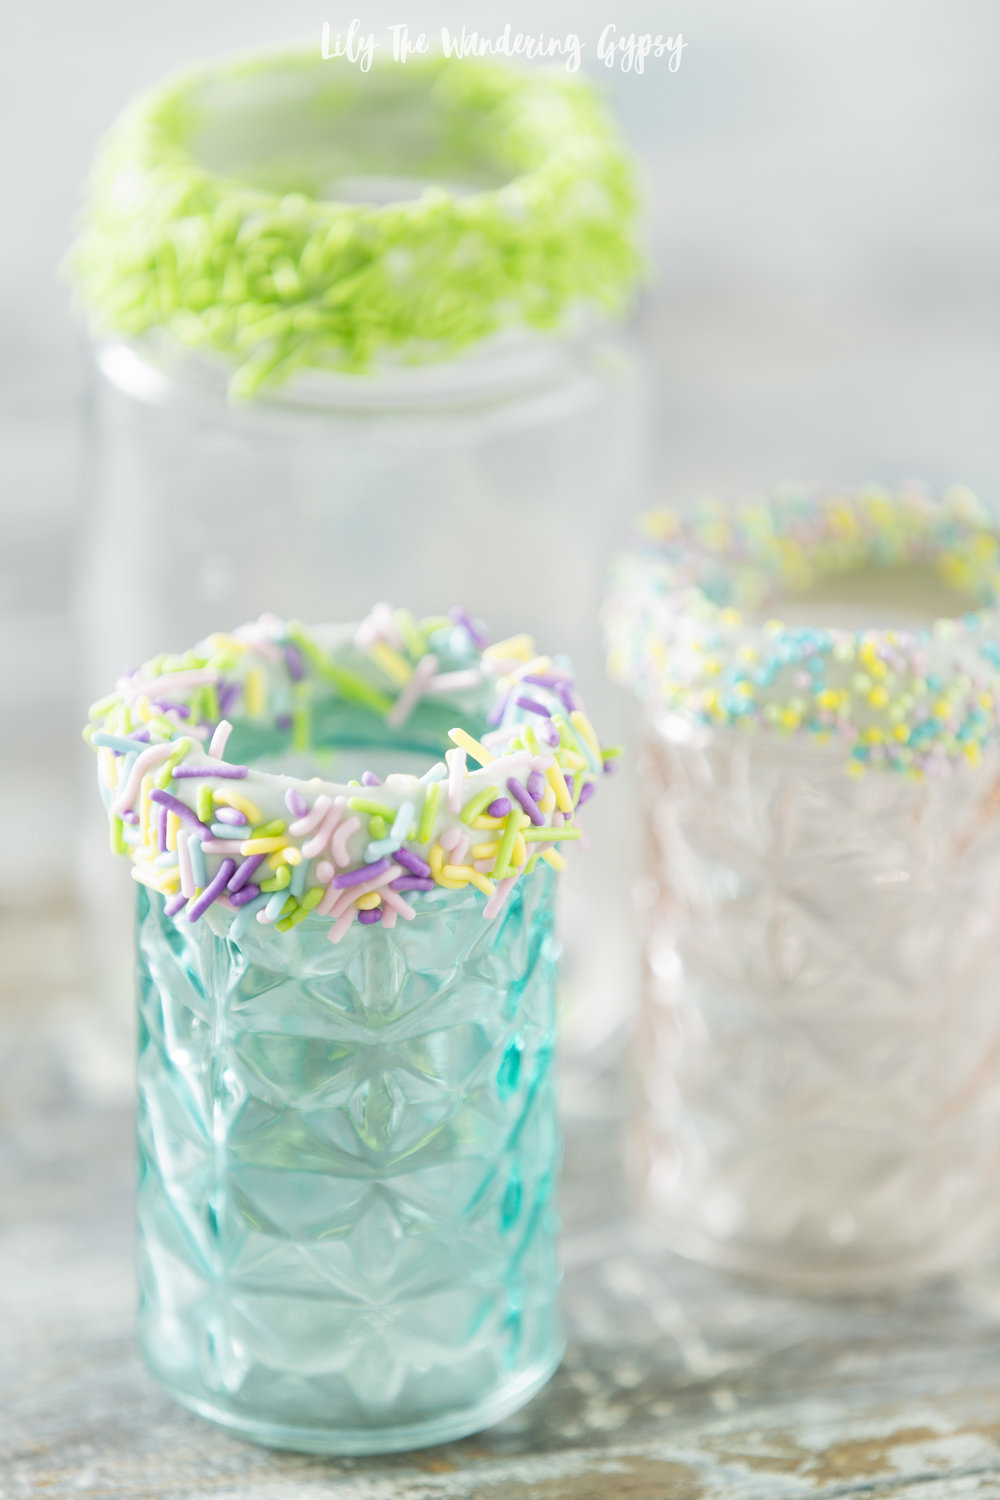 cute jars with sprinkles on rim